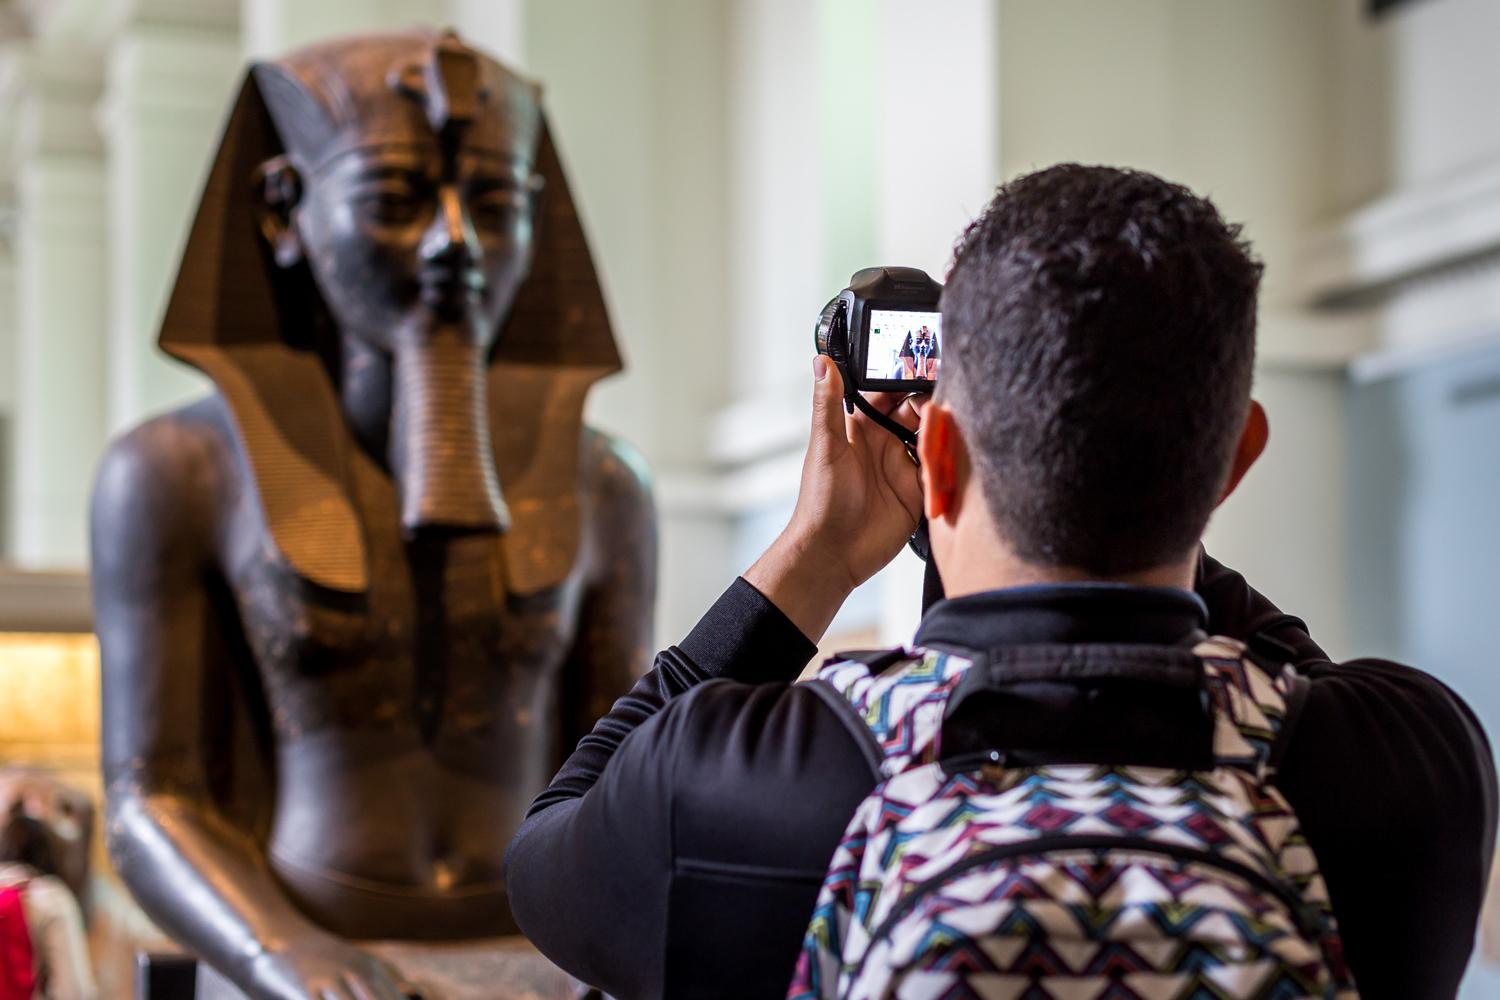 British Museum remains the most visited attraction in England with nearly 6 million visitors